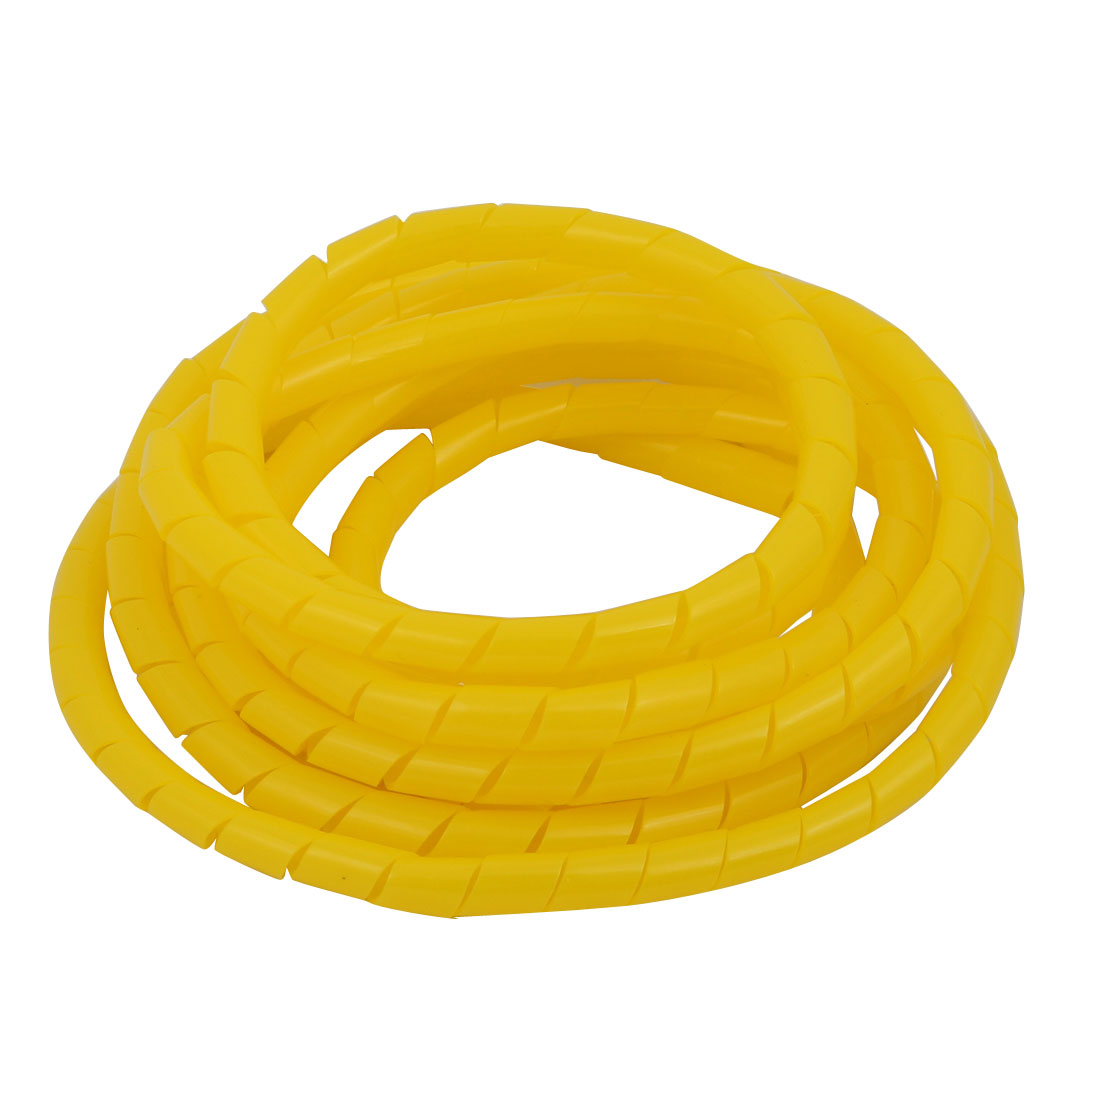 Unique Bargains Flexible Spiral Tube Cable Wire Wrap Yellow Manage Cord 6mm Dia x 2 Meter Long - image 2 de 2